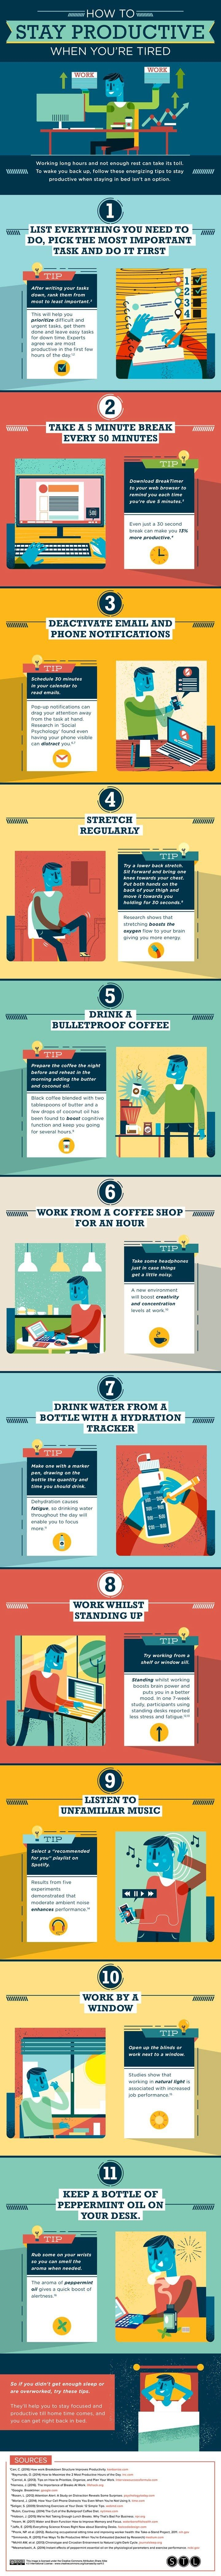 How to Stay Productive When You're Tired - #Infographic